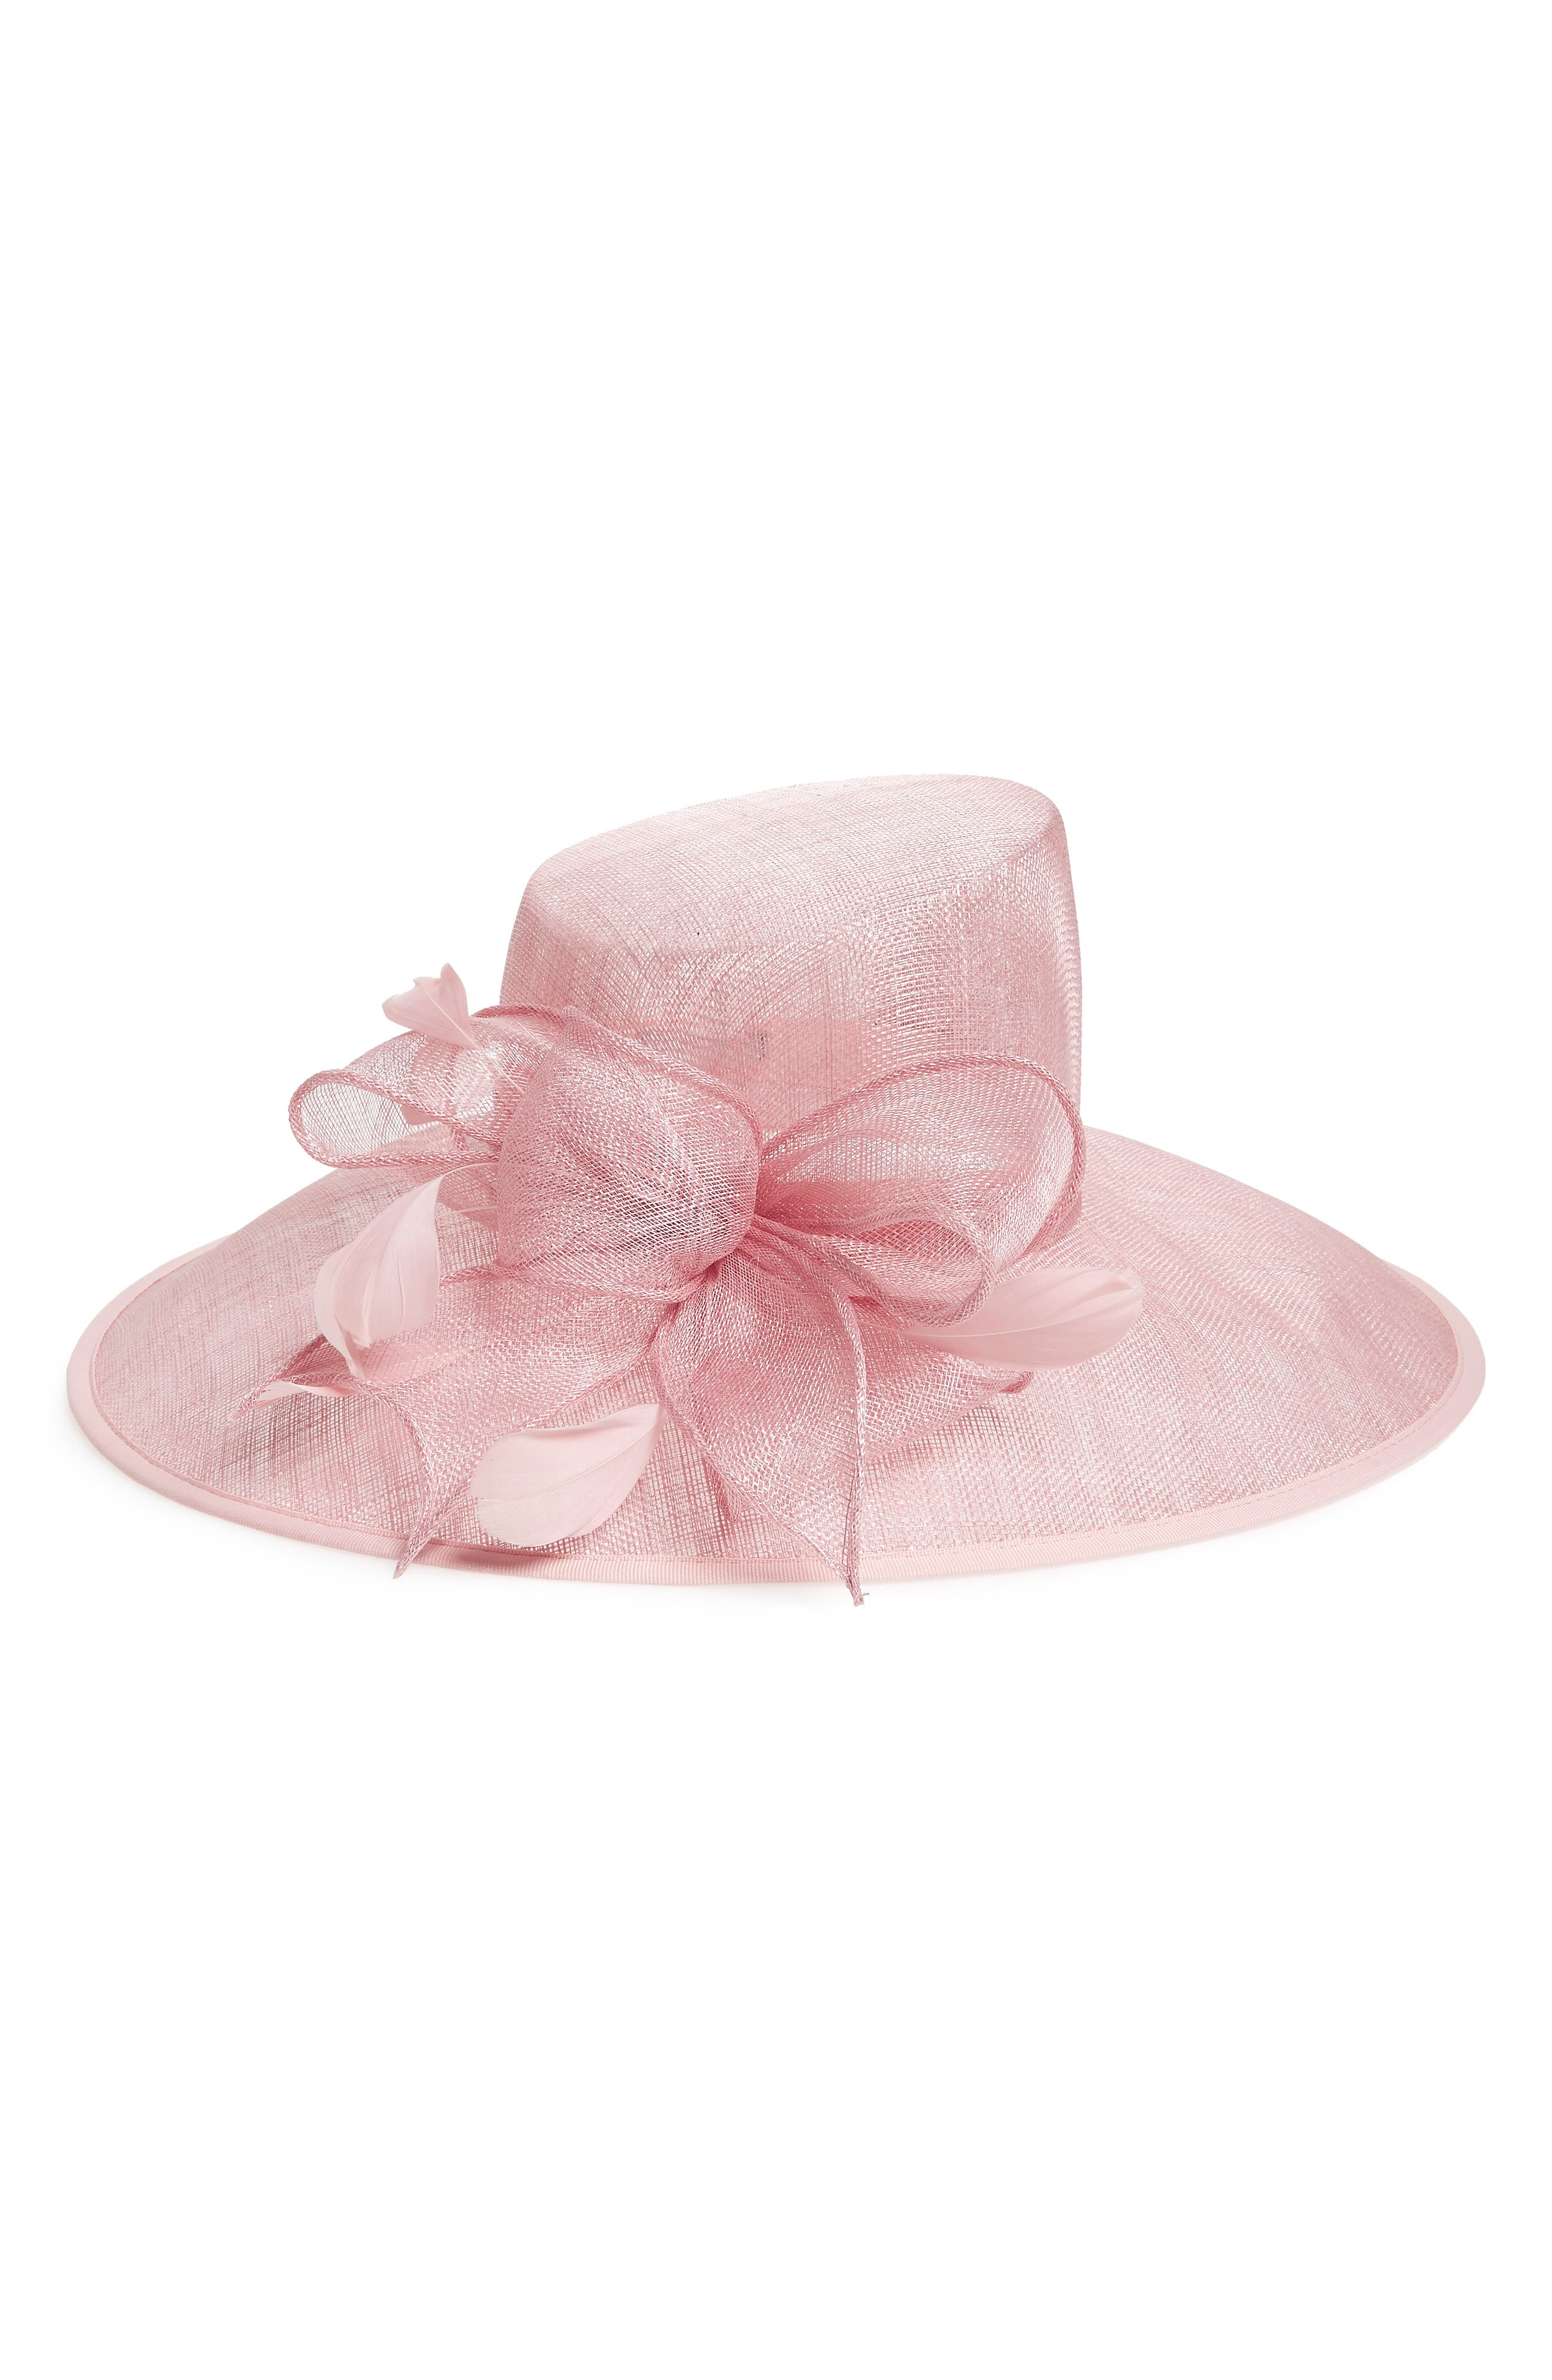 Nordstrom Asymmetrical Sinamay Derby Hat